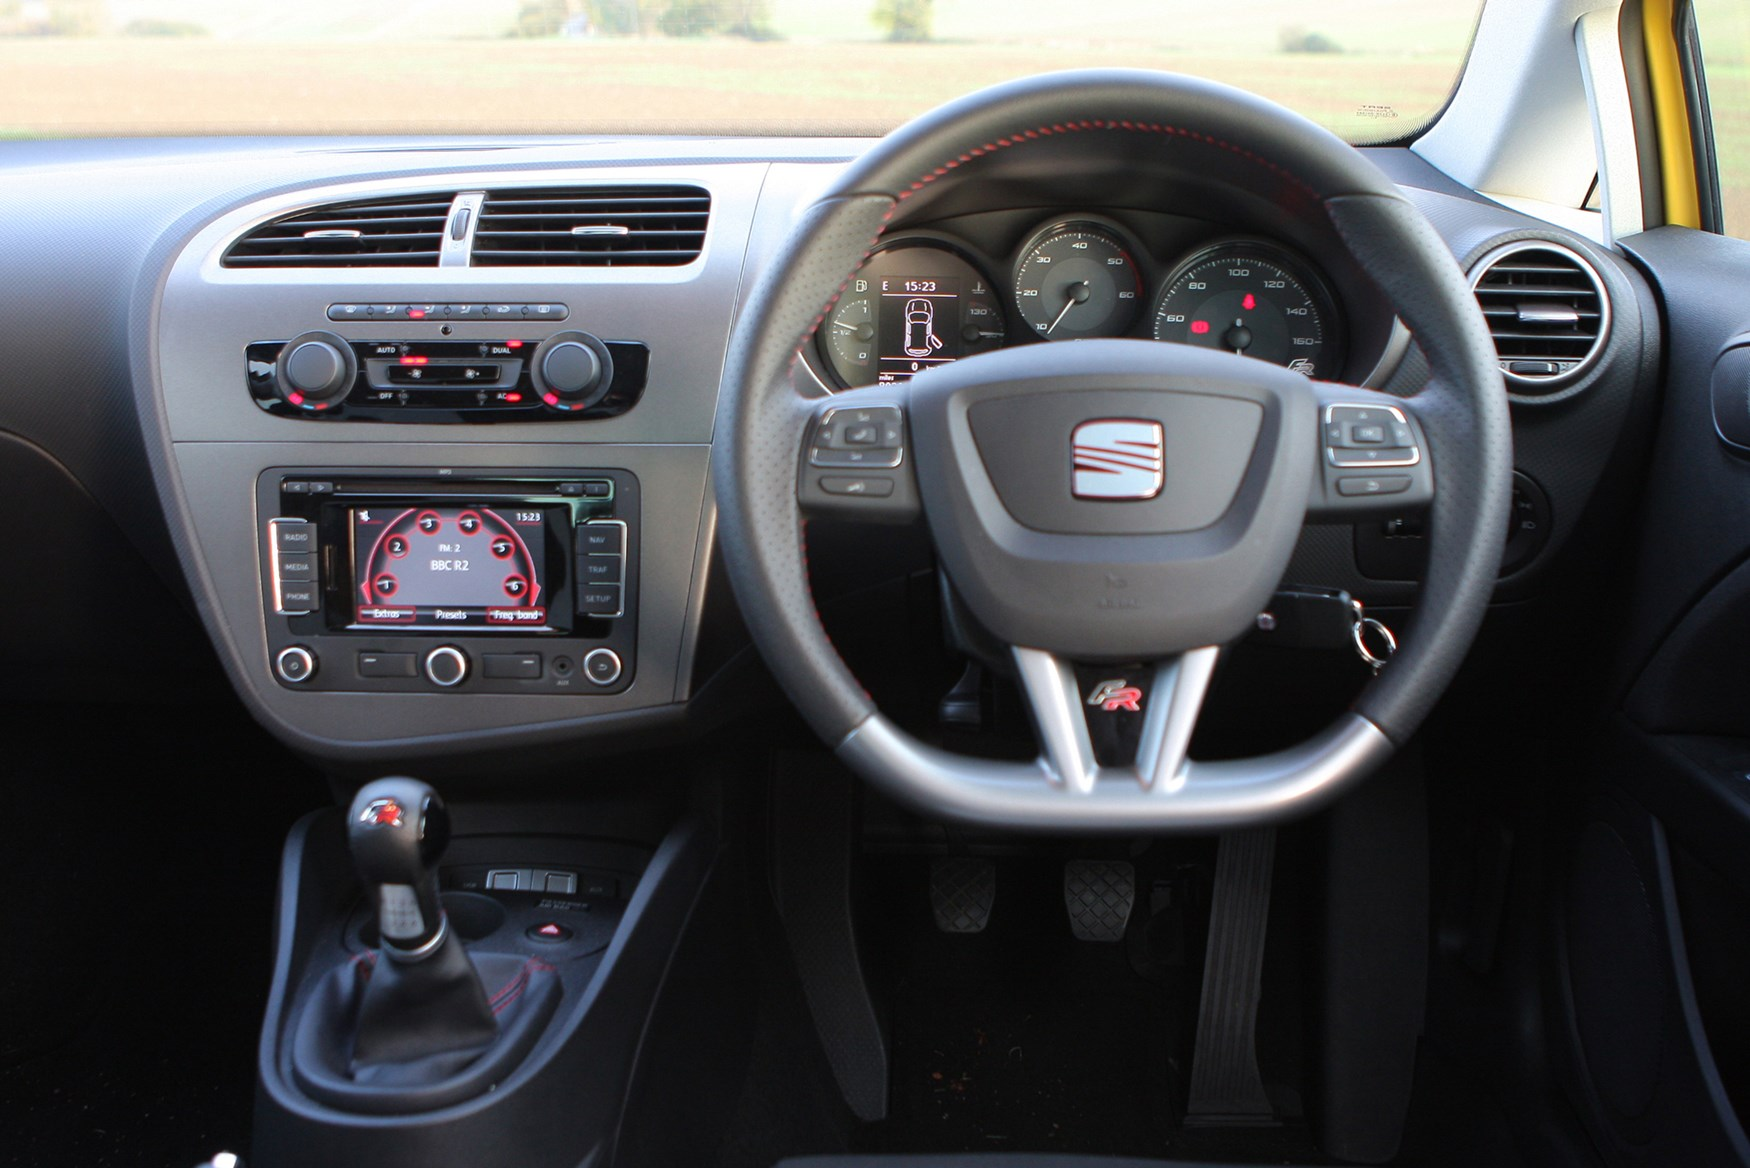 Seat leon fr review 2006 2012 parkers for Interior seat leon